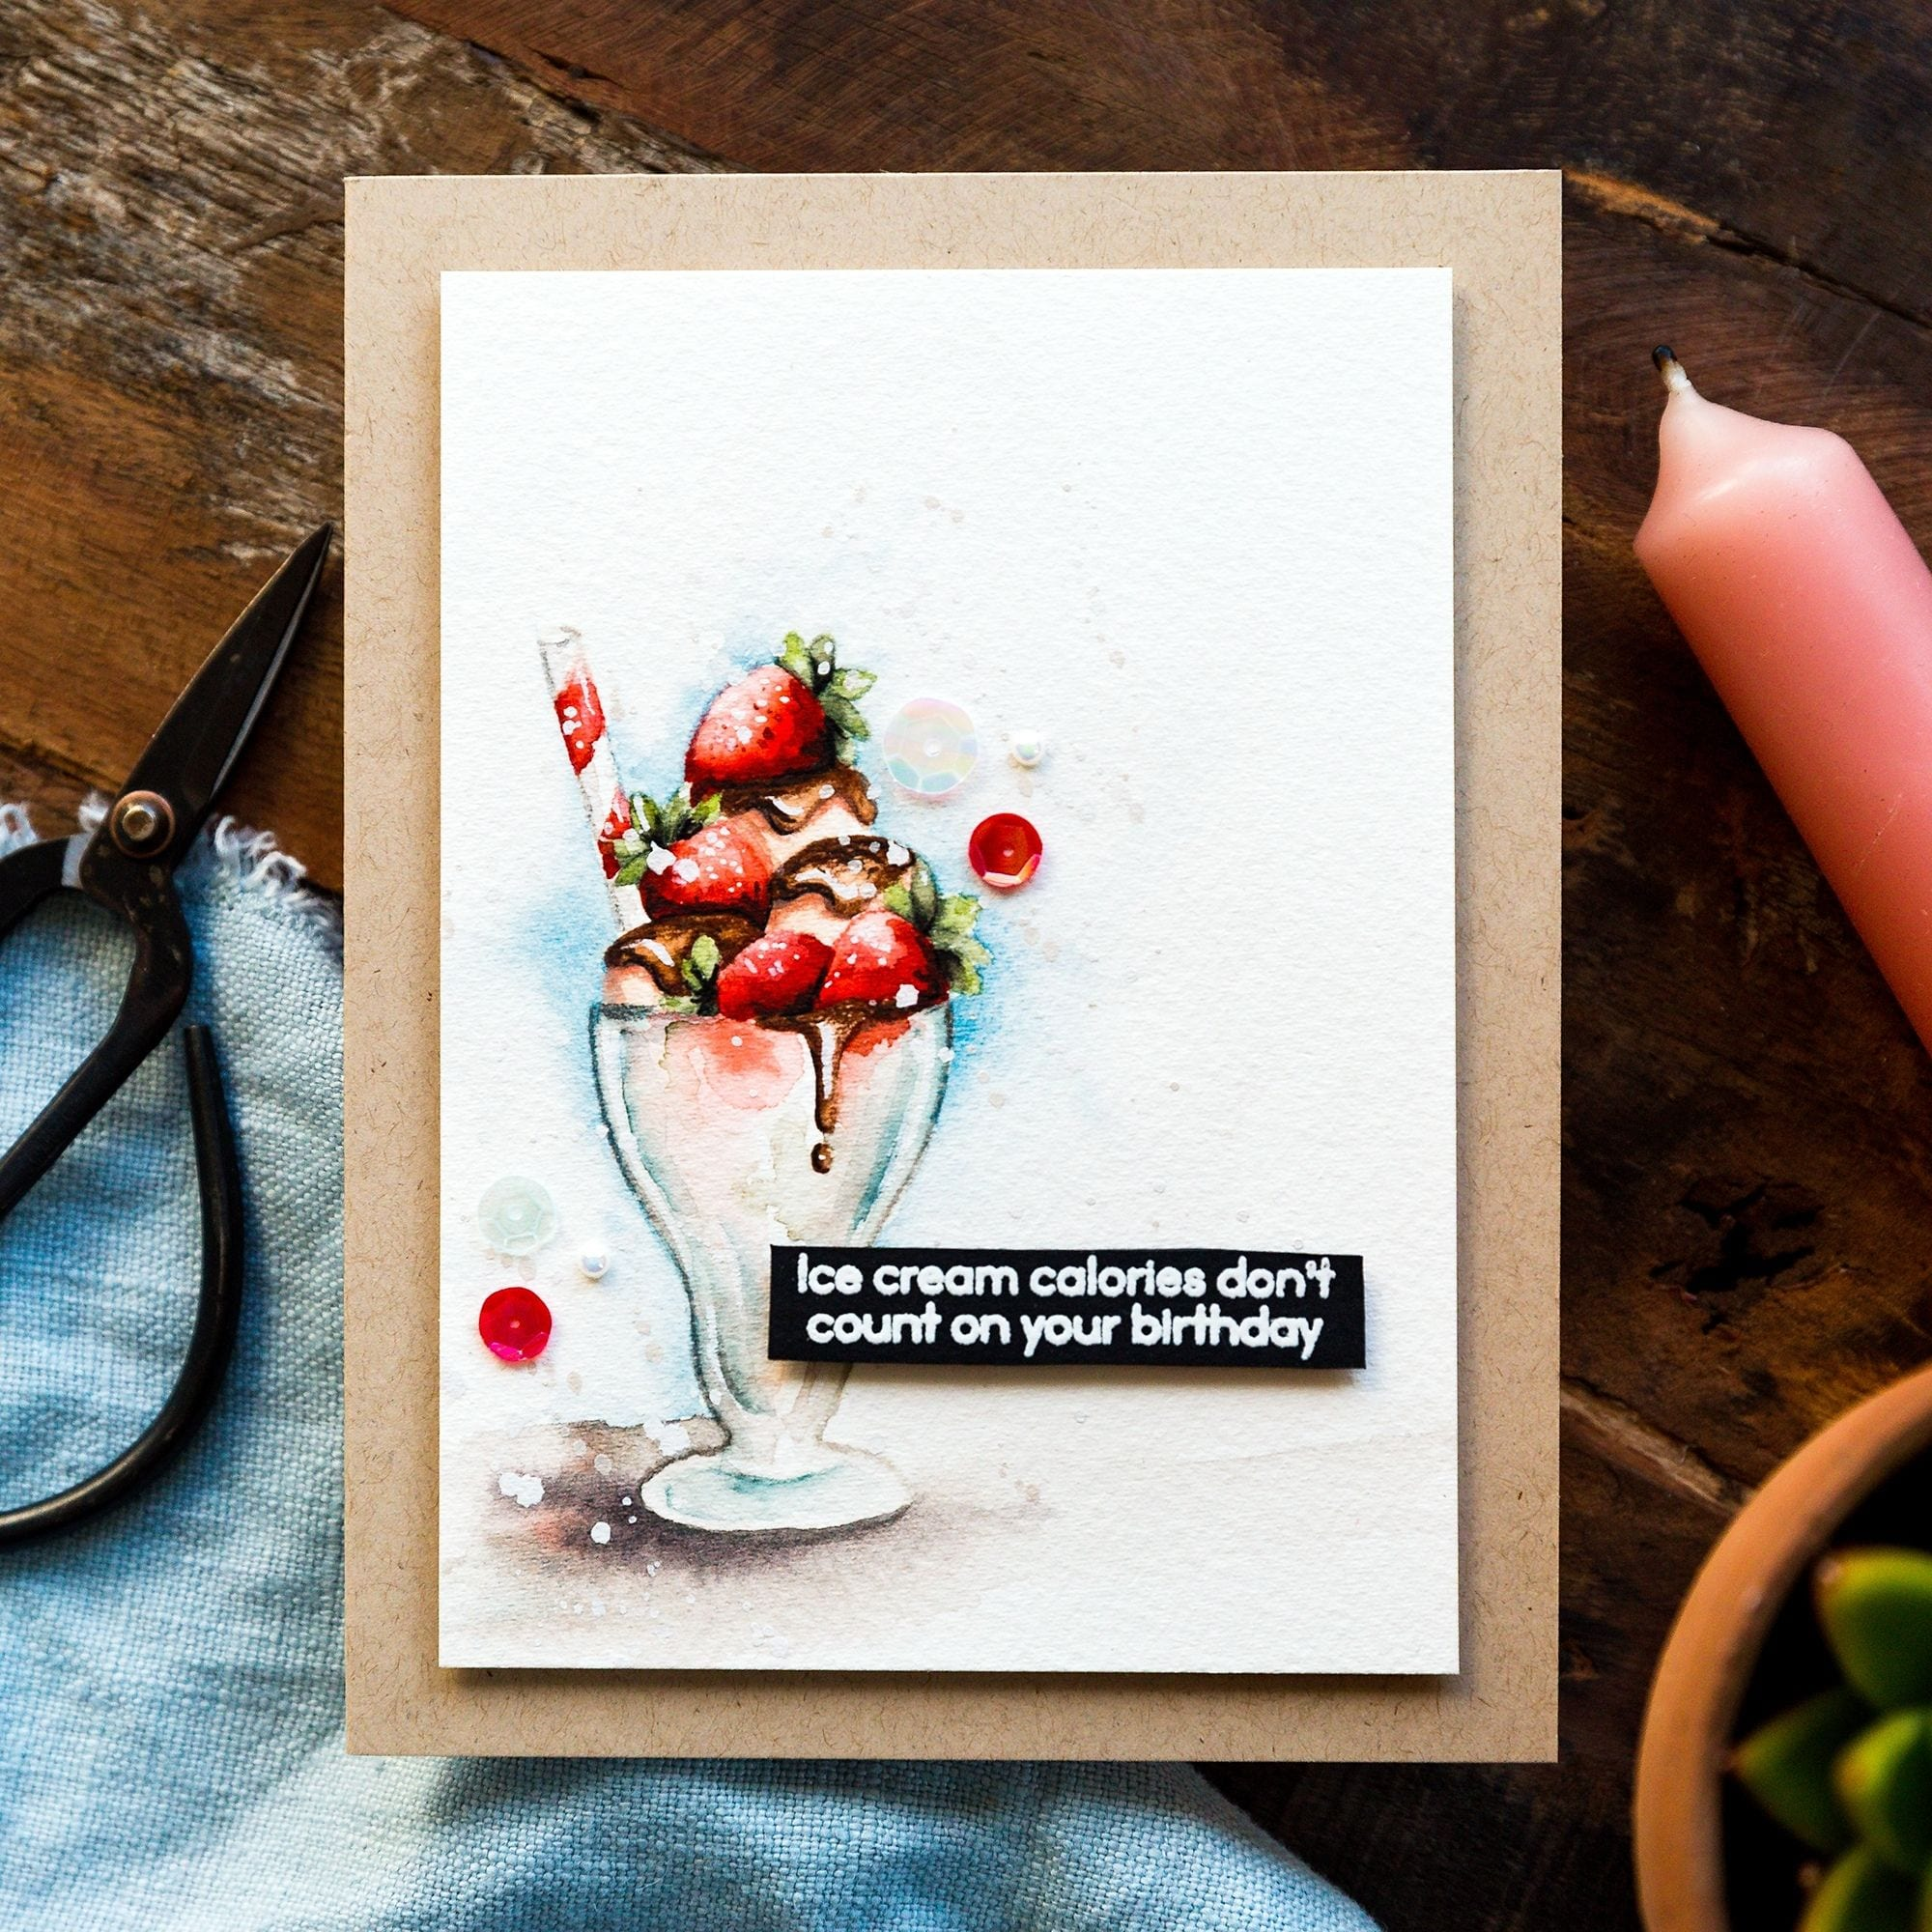 Video tutorial - working through the ugly phase of a watercolour painting of an ice cream sundae. Handmade card by Debby Hughes #debbyhughes #limedoodledesign #handmadecards #cardmaking #cardmakingideas #cardmakingtechniques  #cardmakingtutorials #handmadecardideas #simonsaysstamp